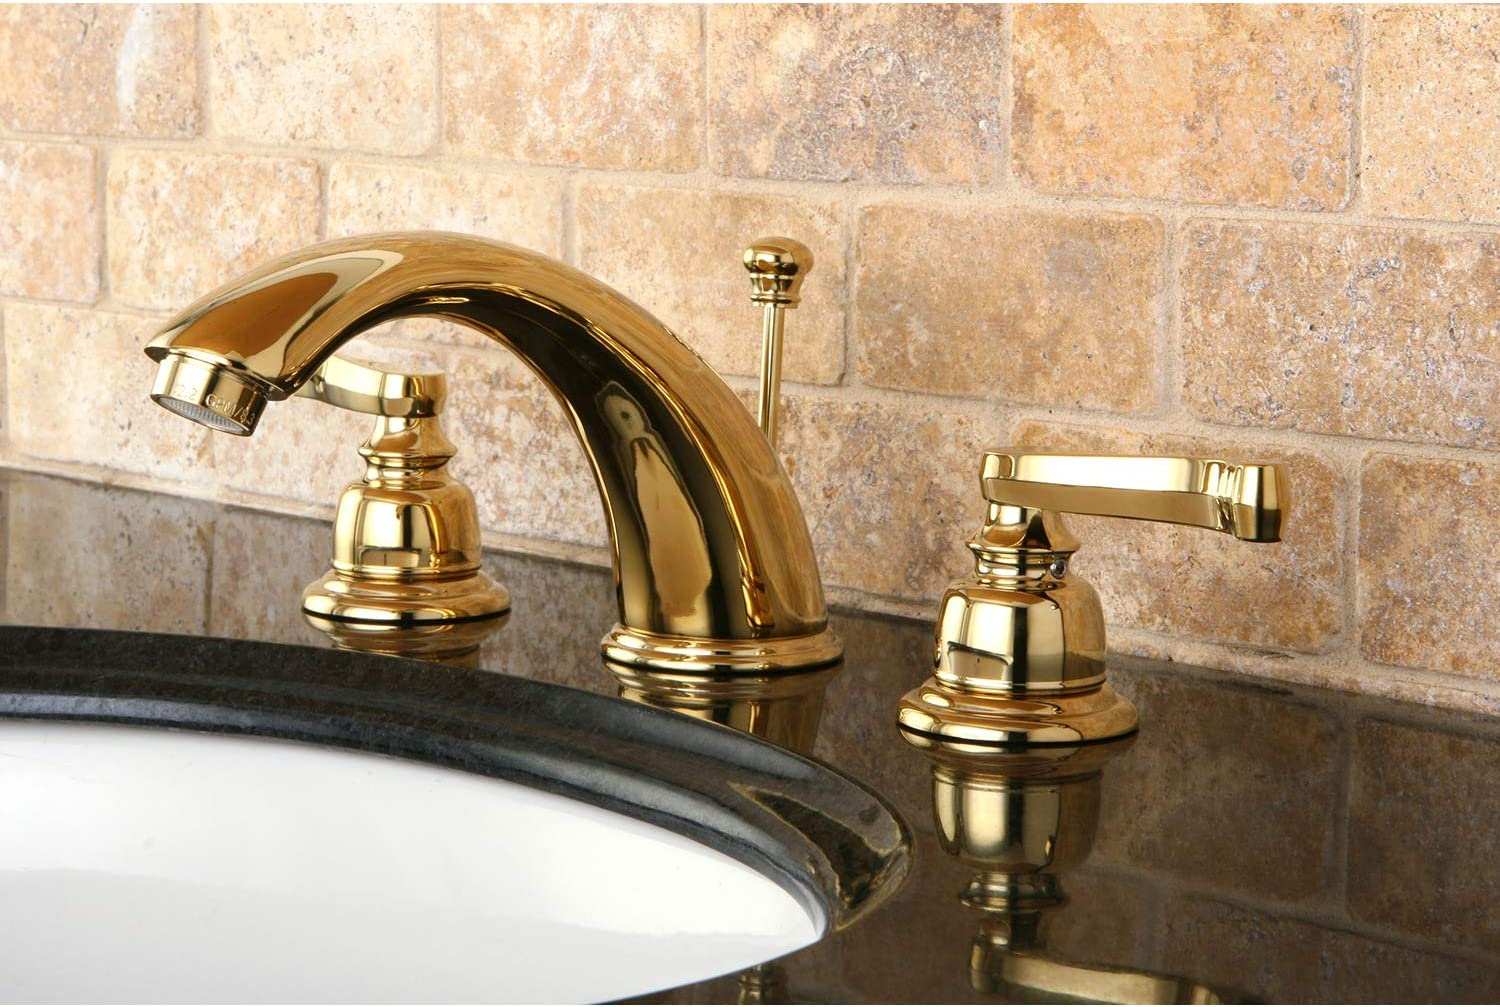 Kingston Brass Kb8962fl Royale Widespread Bathroom Faucet With Brass Pop Up Drain Polished Brass Touch On Bathroom Sink Faucets